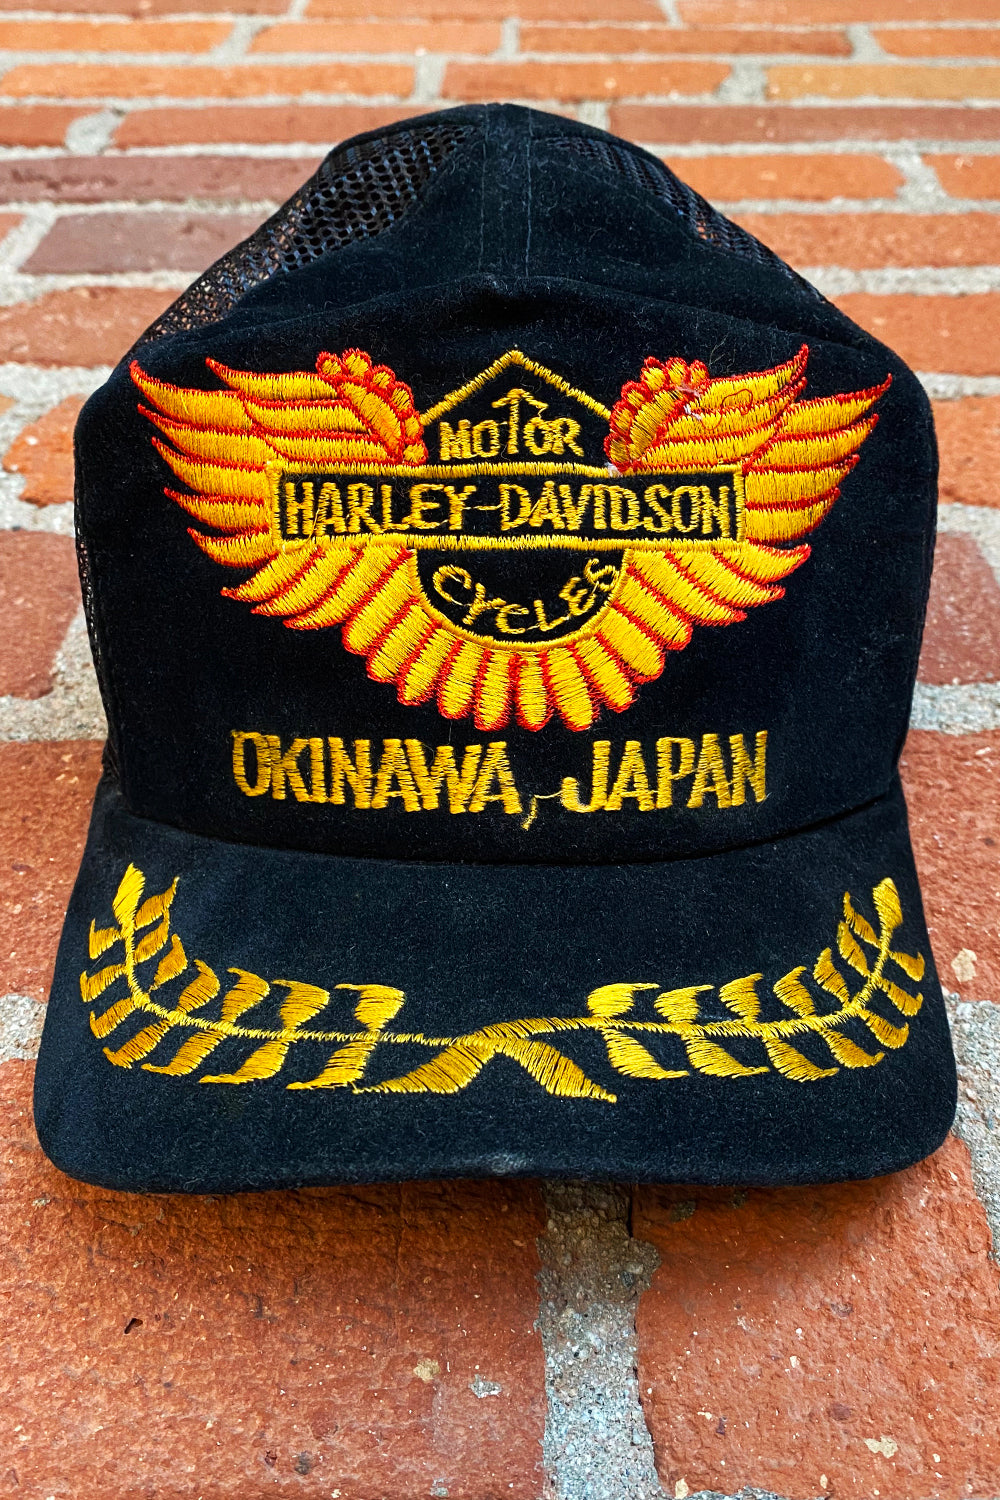 Harley Davidson Okinawa Japan Embroidered Snap-Back Hat, Accessories, BACKBITE, BACKBITE